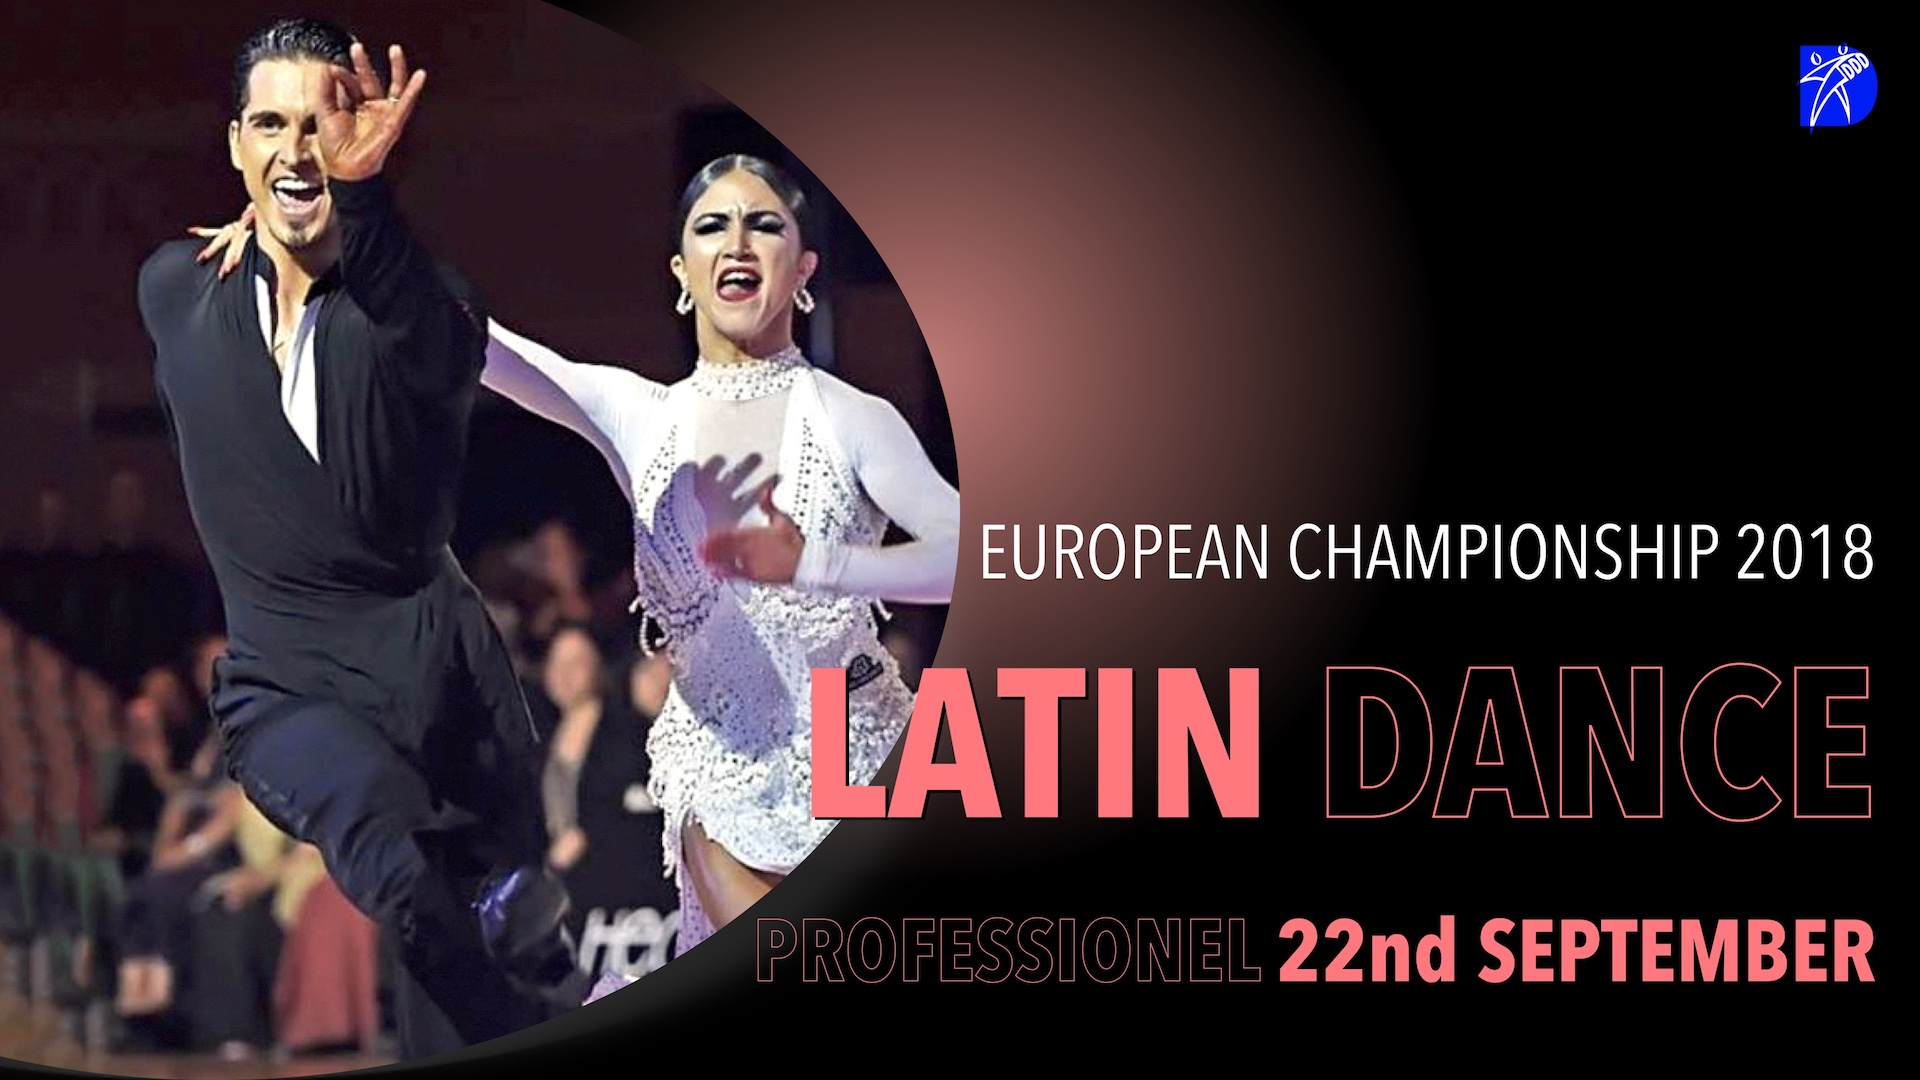 European Championship Latin Dance 2018